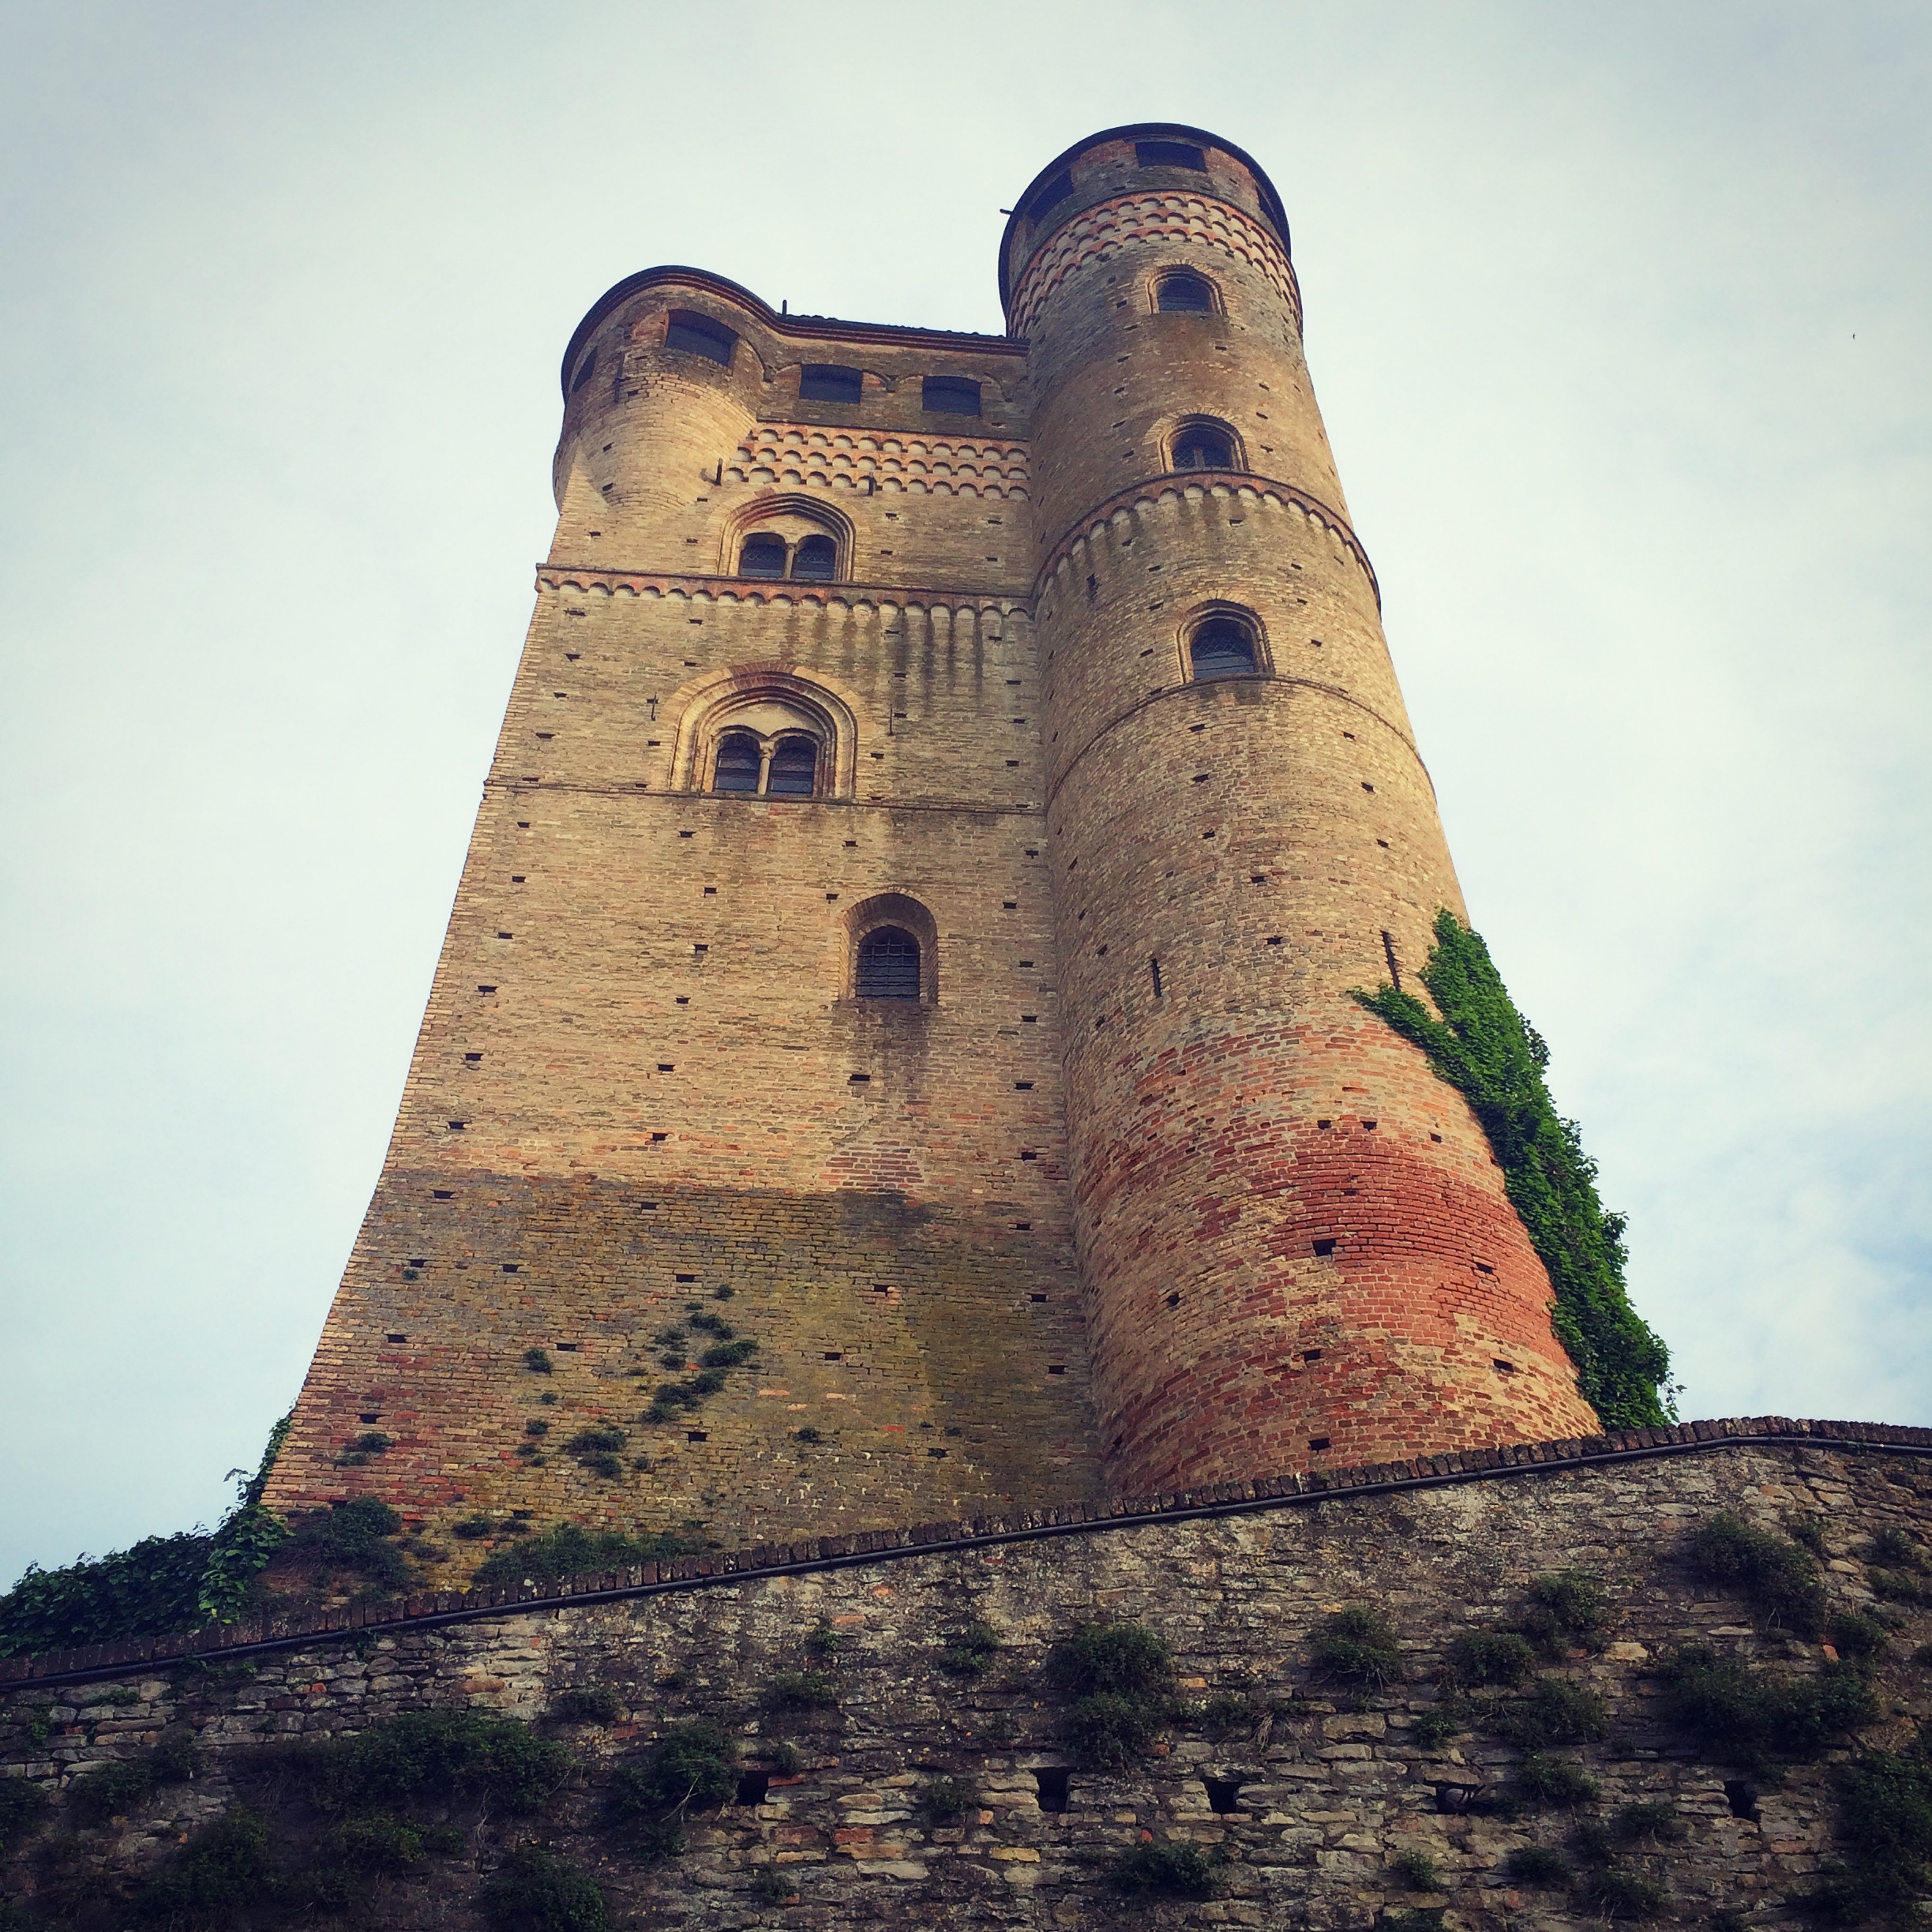 Copy of Best Piemonte Wine Tour - Serralunga d'Alba Castle